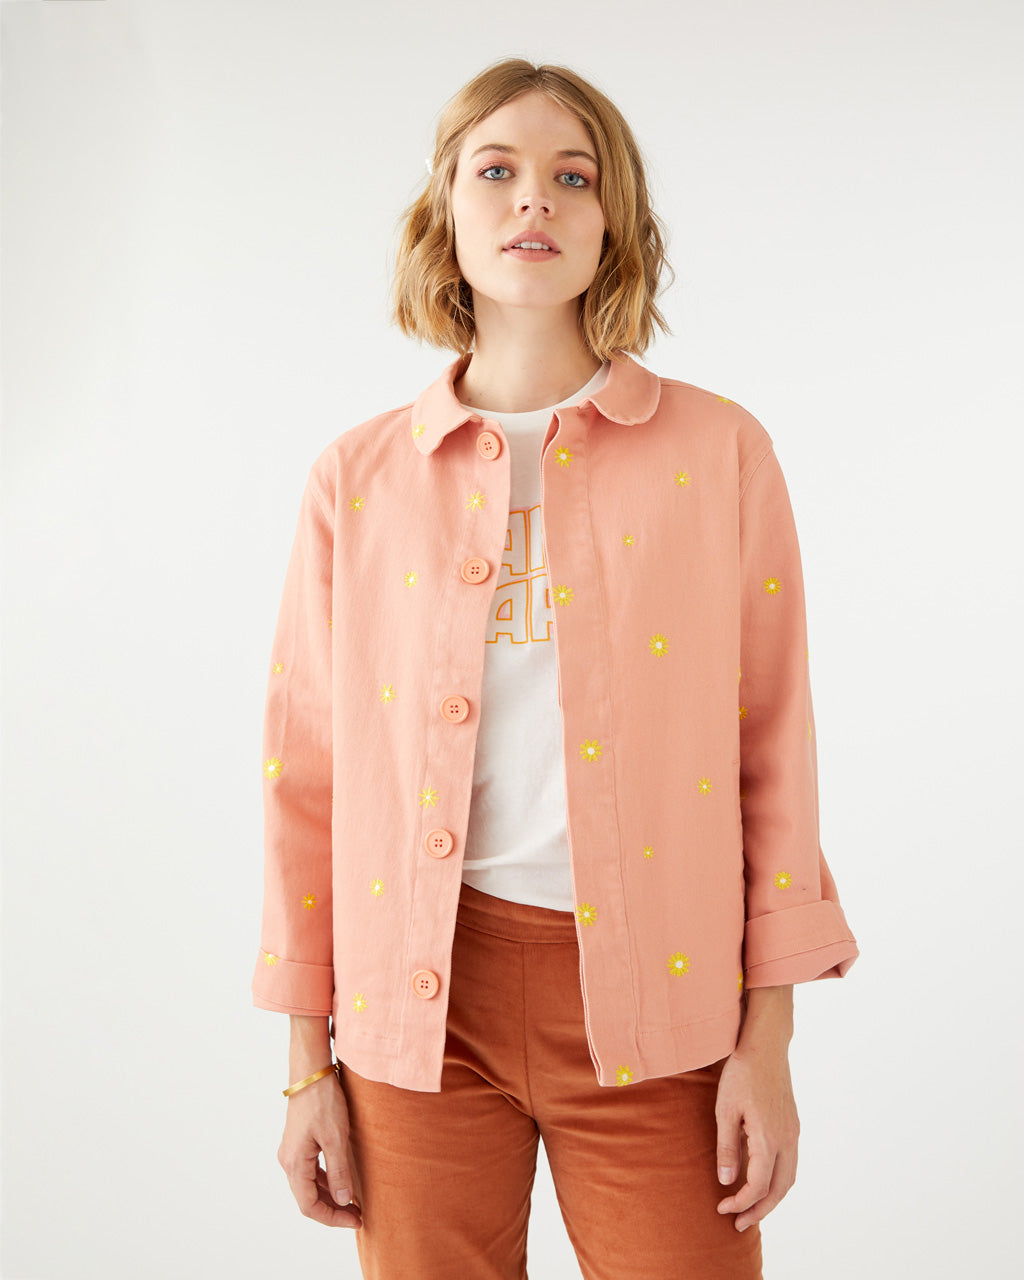 salmon colored work jacket with a yellow daisy pattern all over shown on model with a white graphic tee and rust colored pants